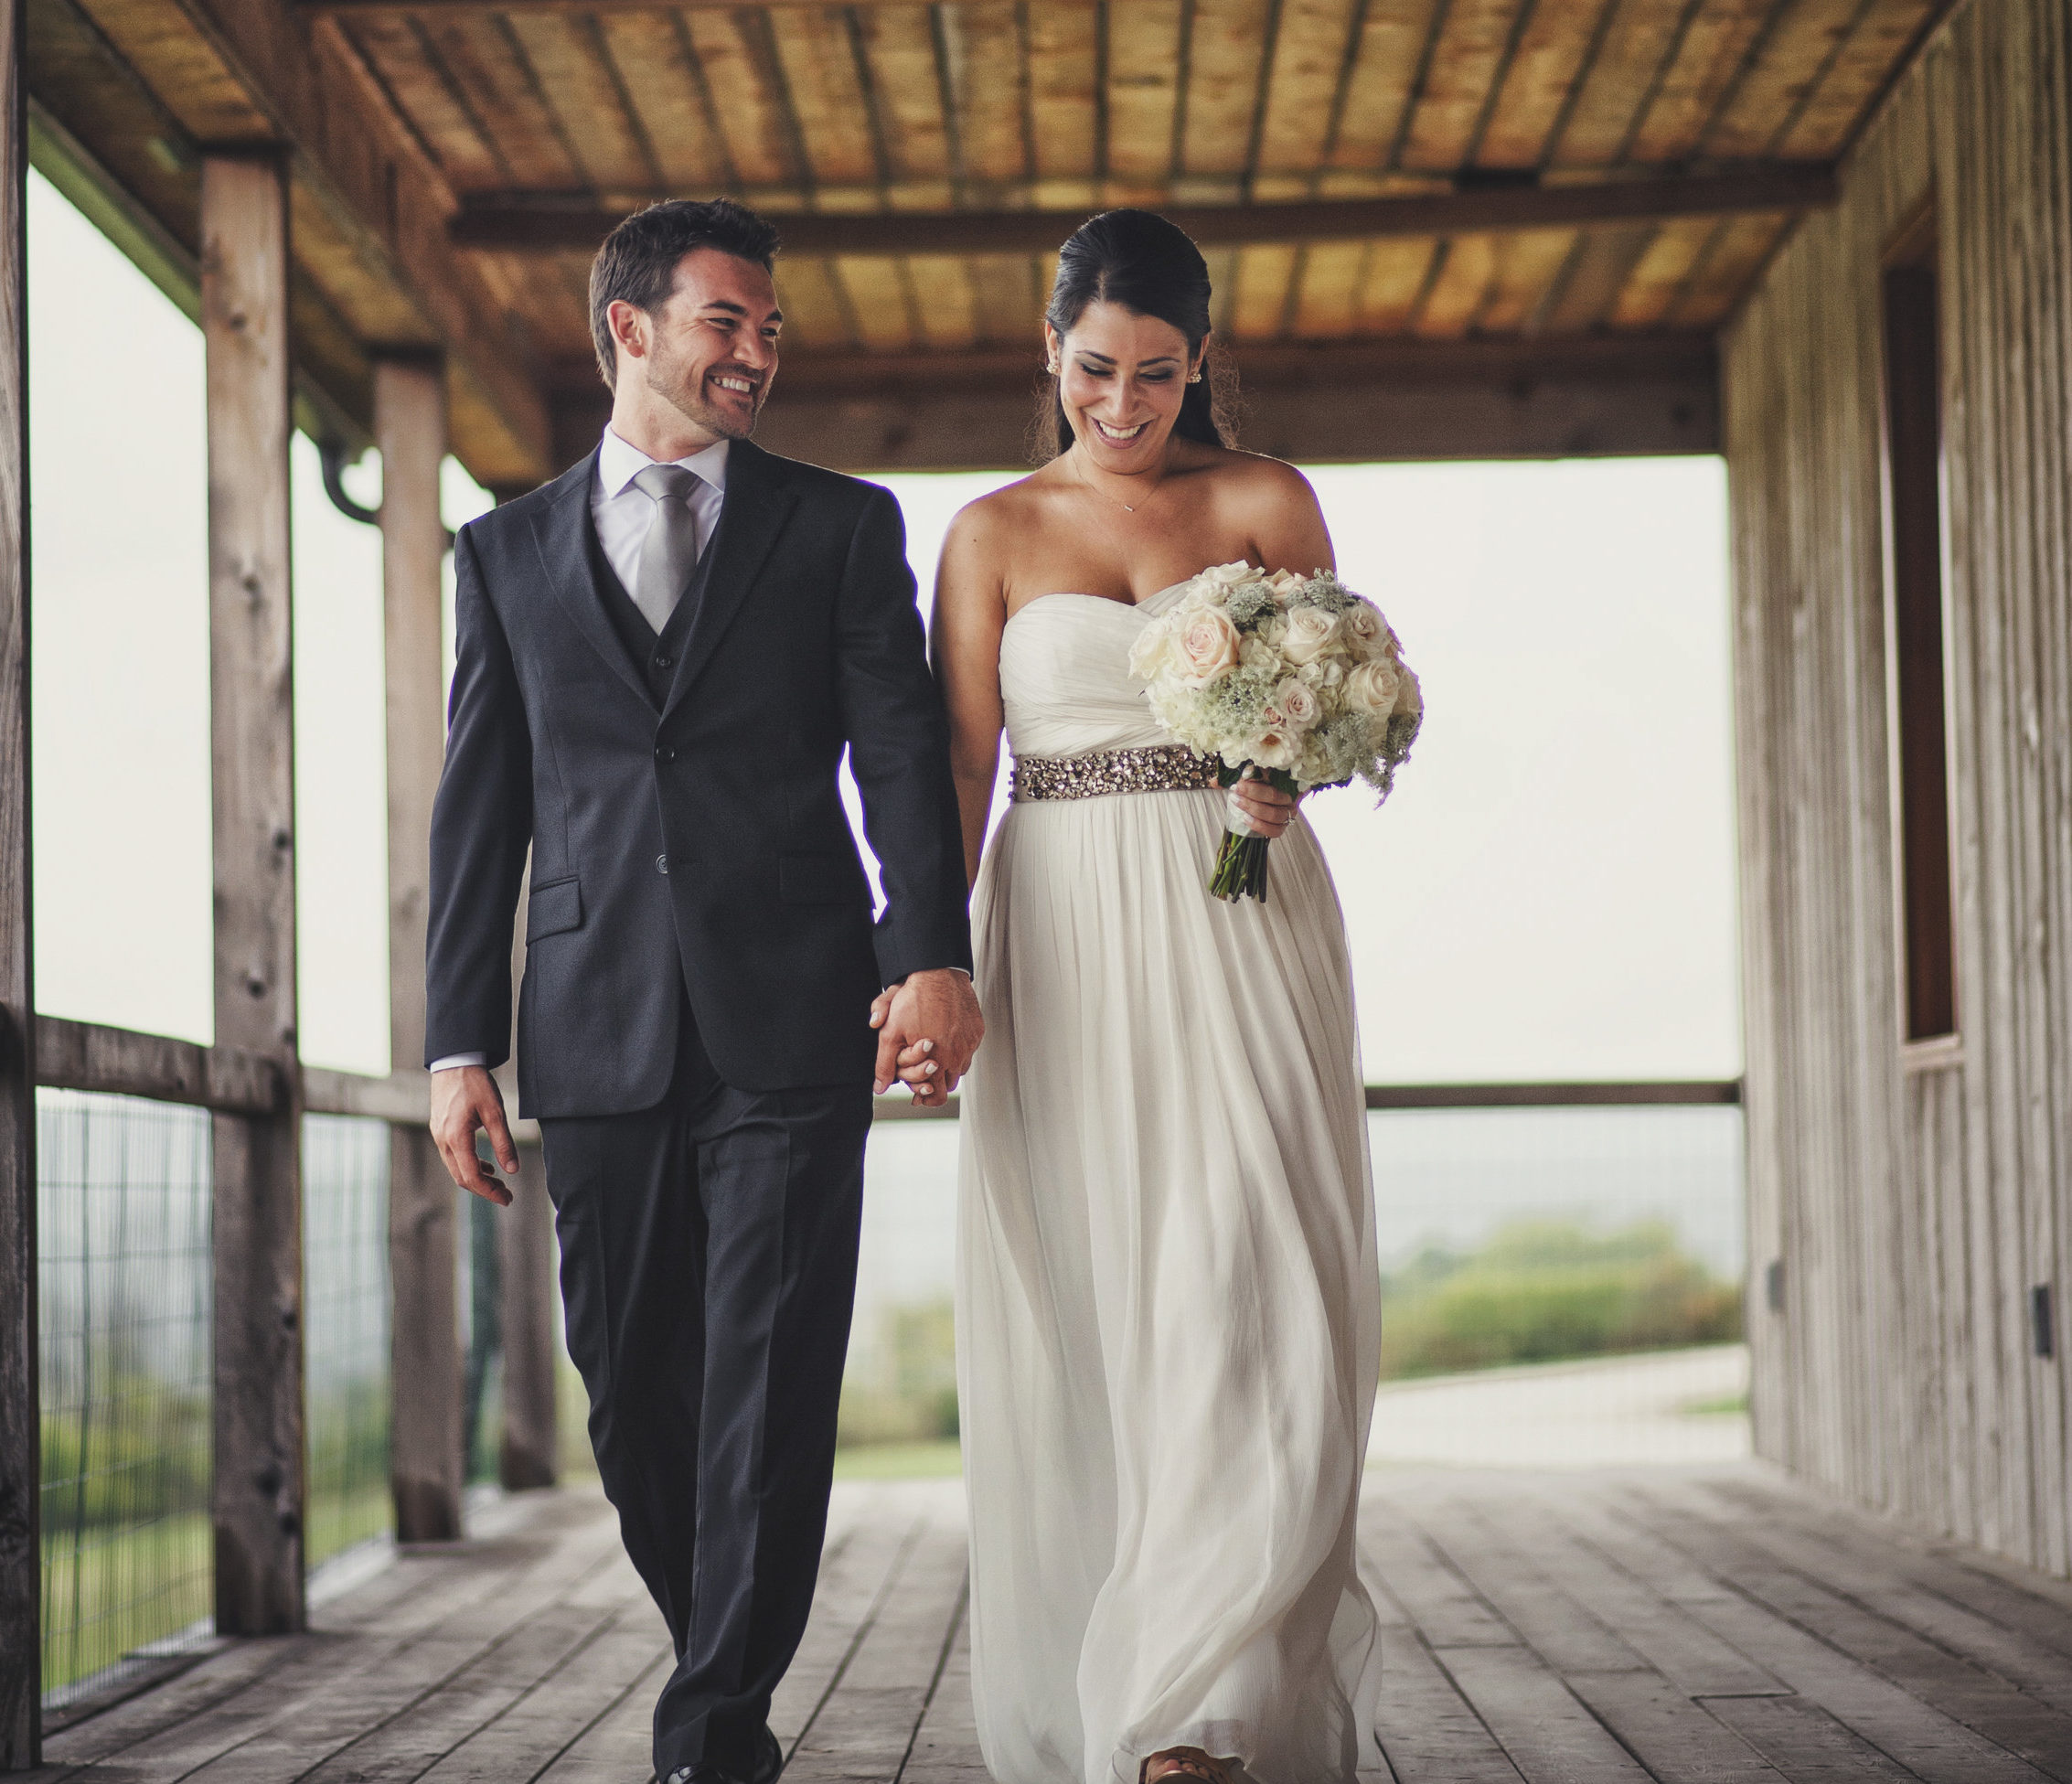 chaumette wedding, wedding planning, how to plan a wedding, planning a wedding, wedding plans, wedding plan, plan a wedding, chaumette winery, chaumette vineyards & winery